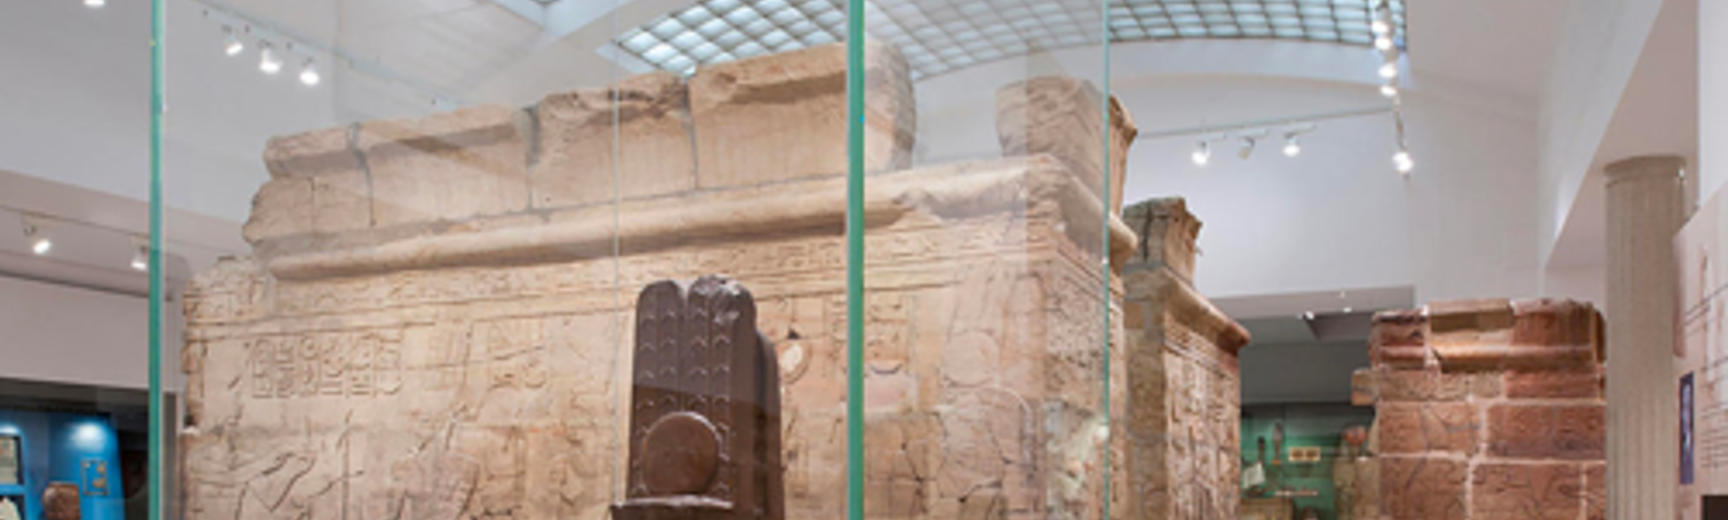 Museum Gallery of Ancient Egypt Objects